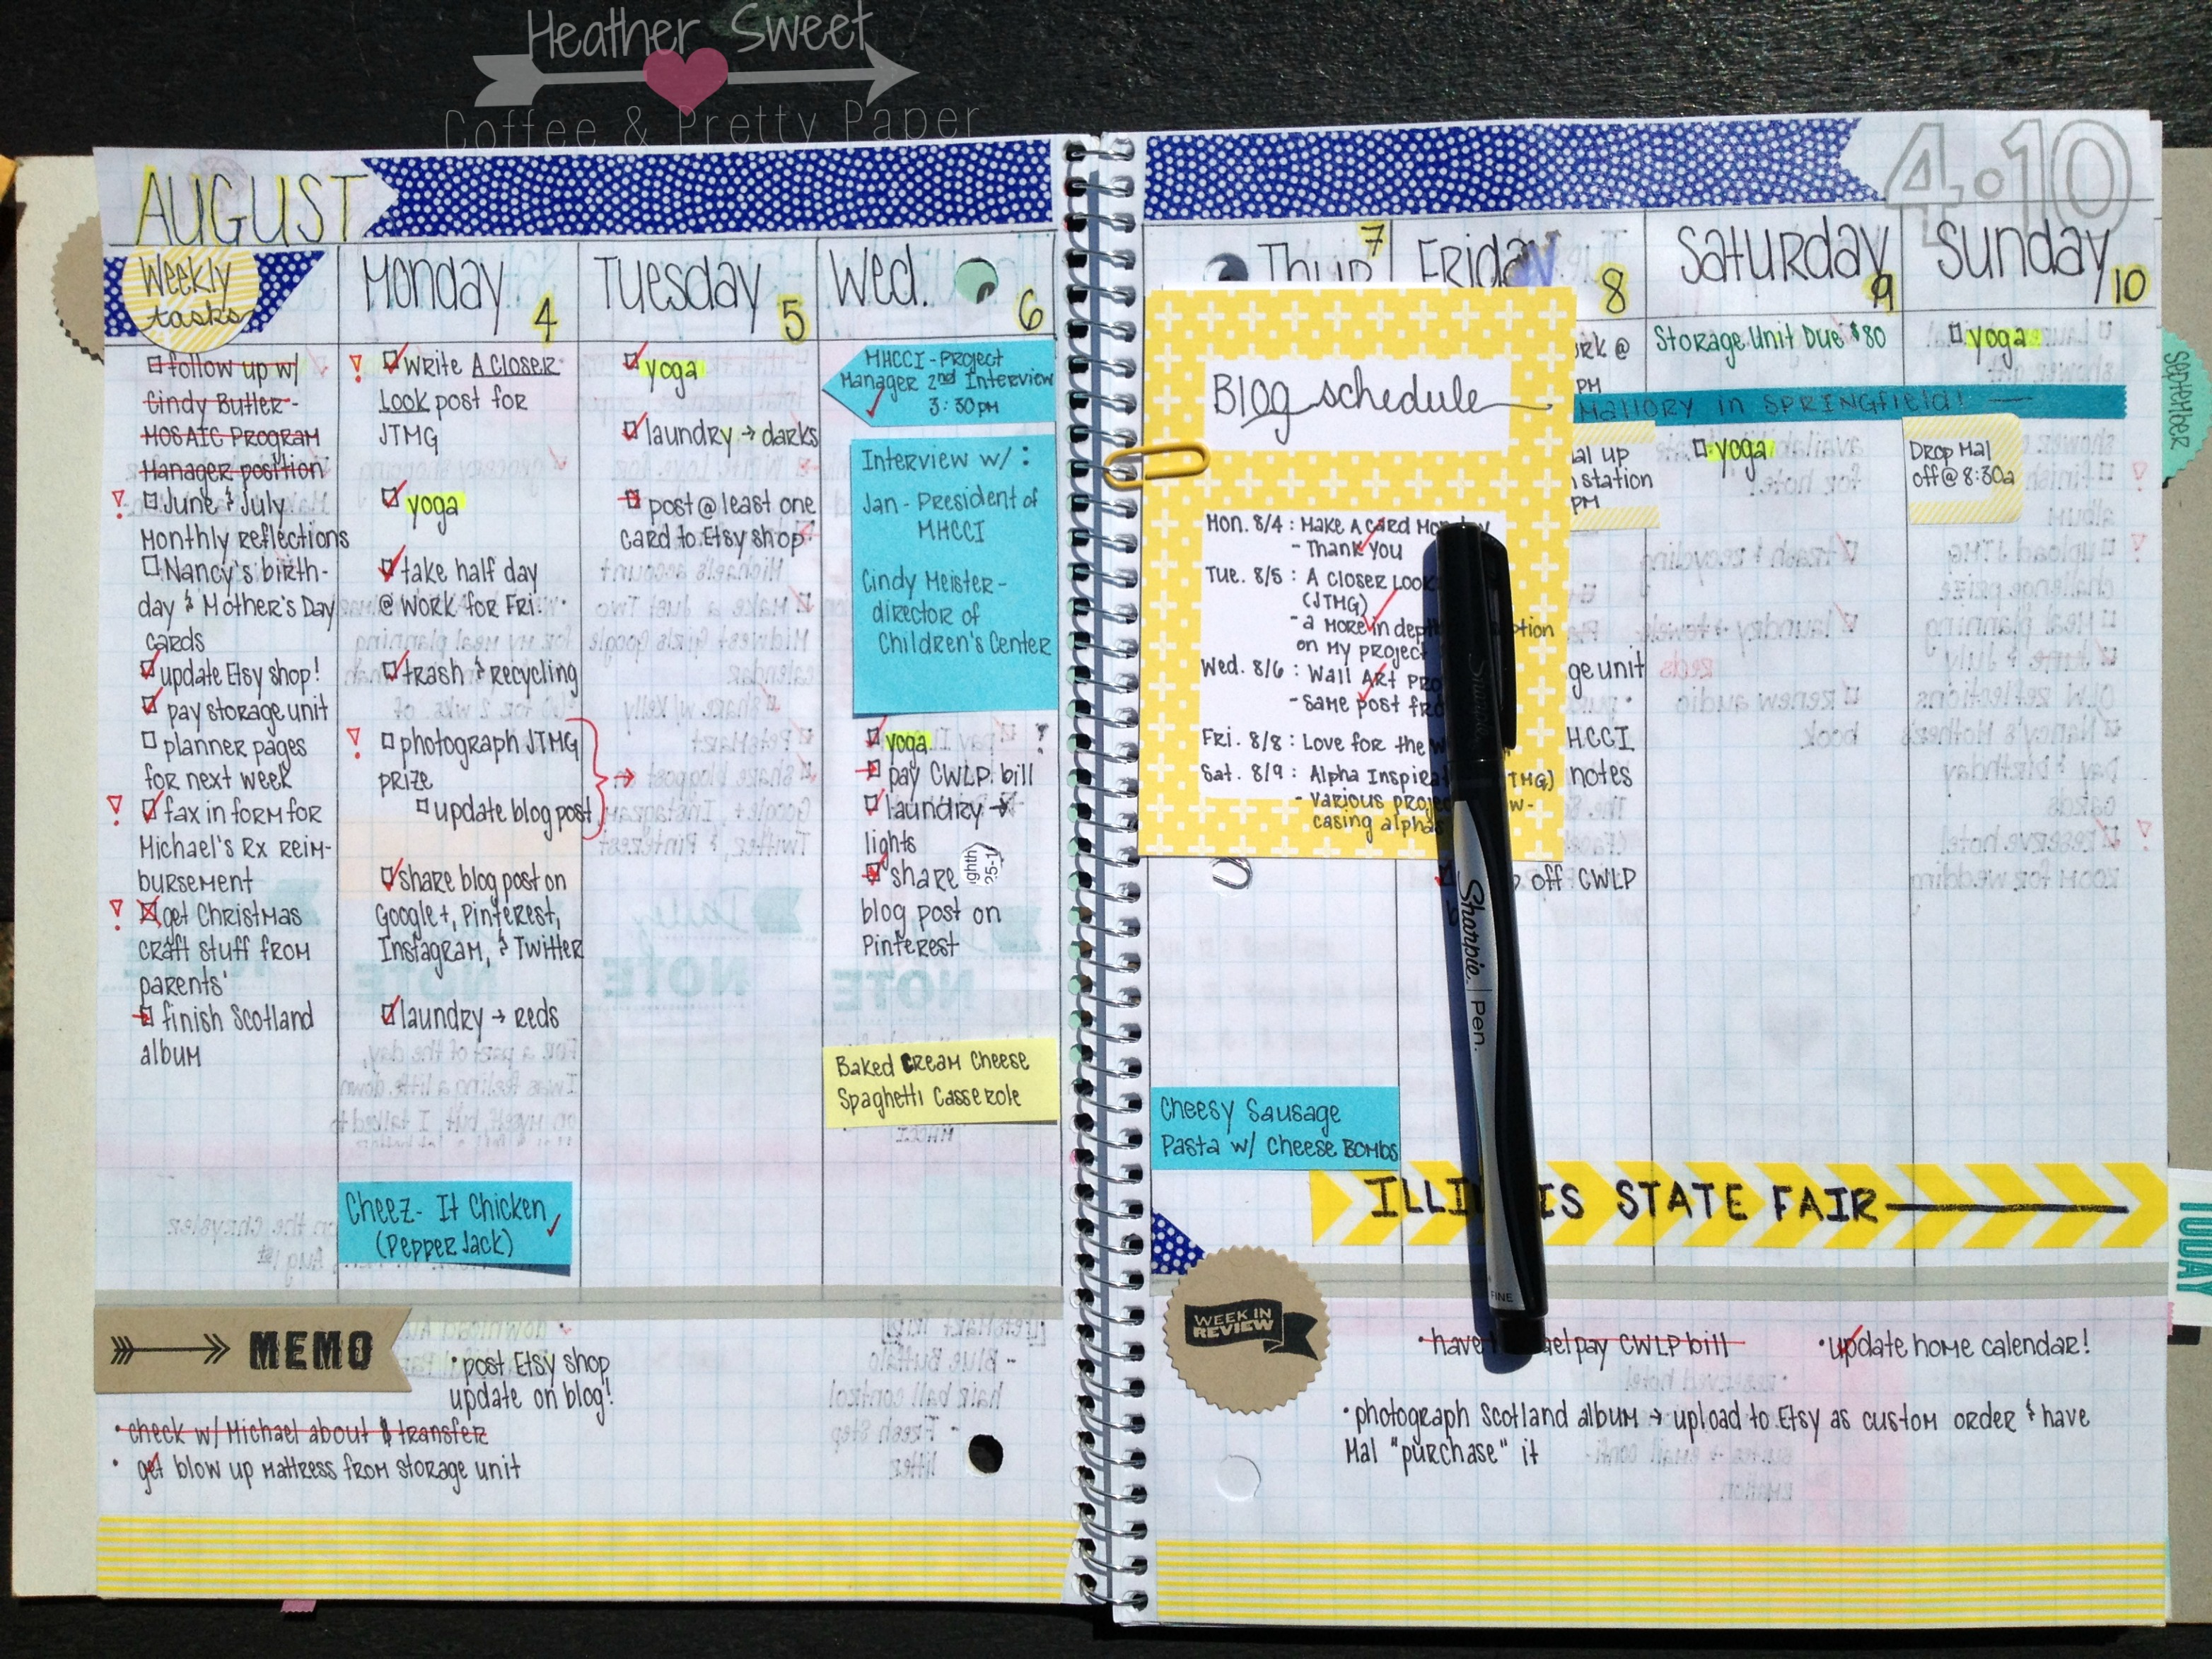 Make Calendar At Staples Dry Erase Calendar Staplesr Coffee And Pretty Paper My Diy Planner